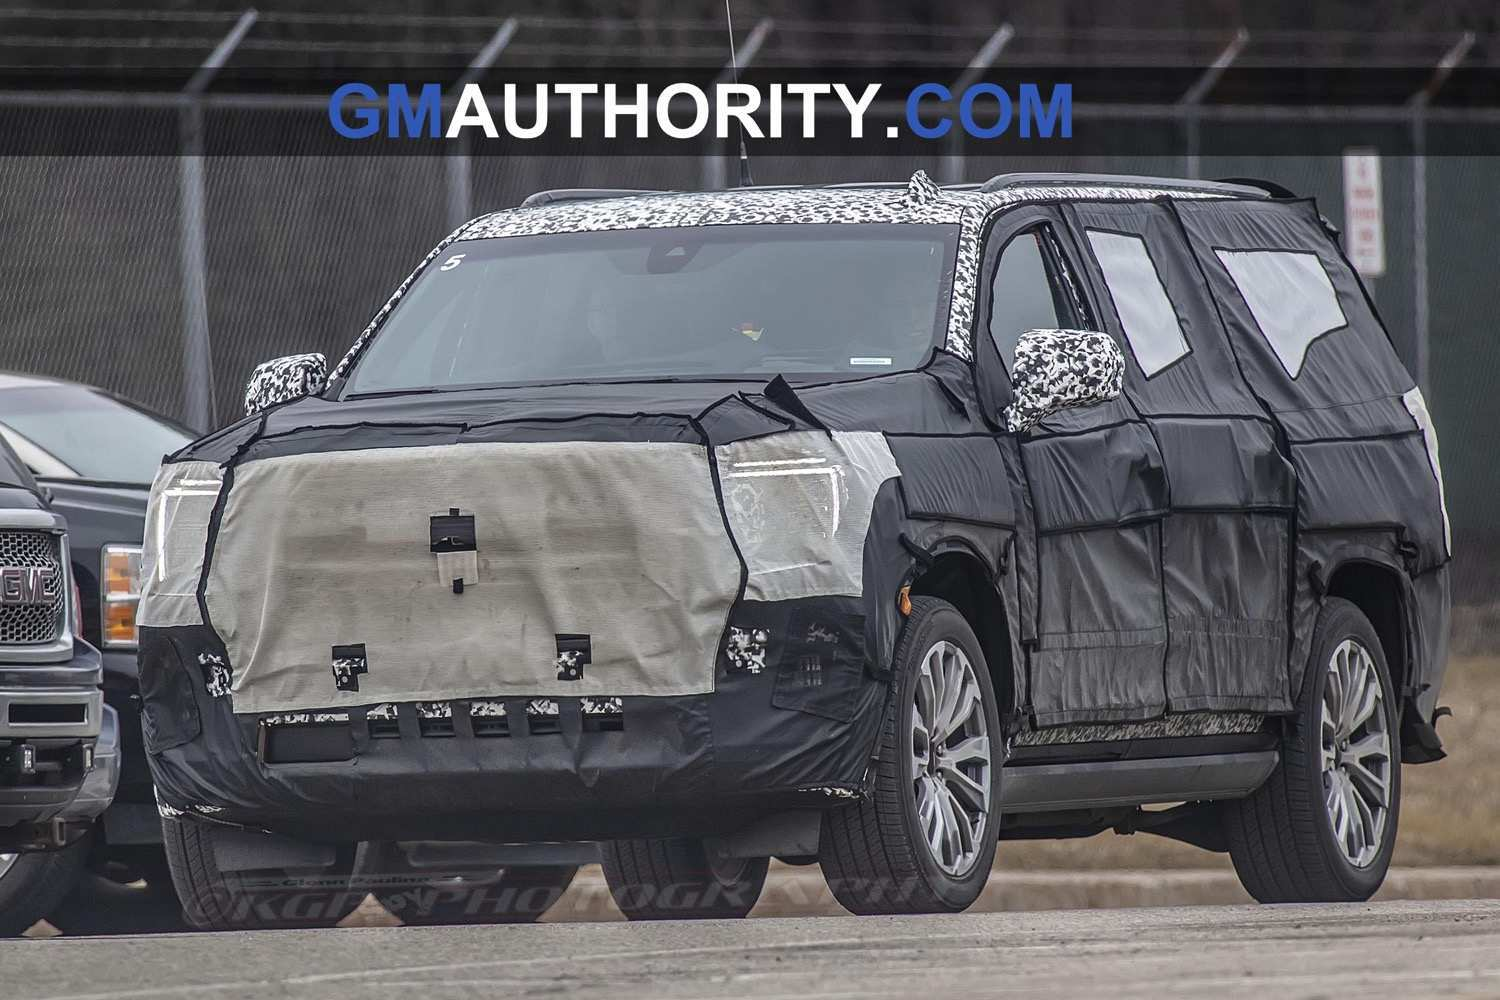 97 New 2020 Gmc Xl Pictures for 2020 Gmc Xl